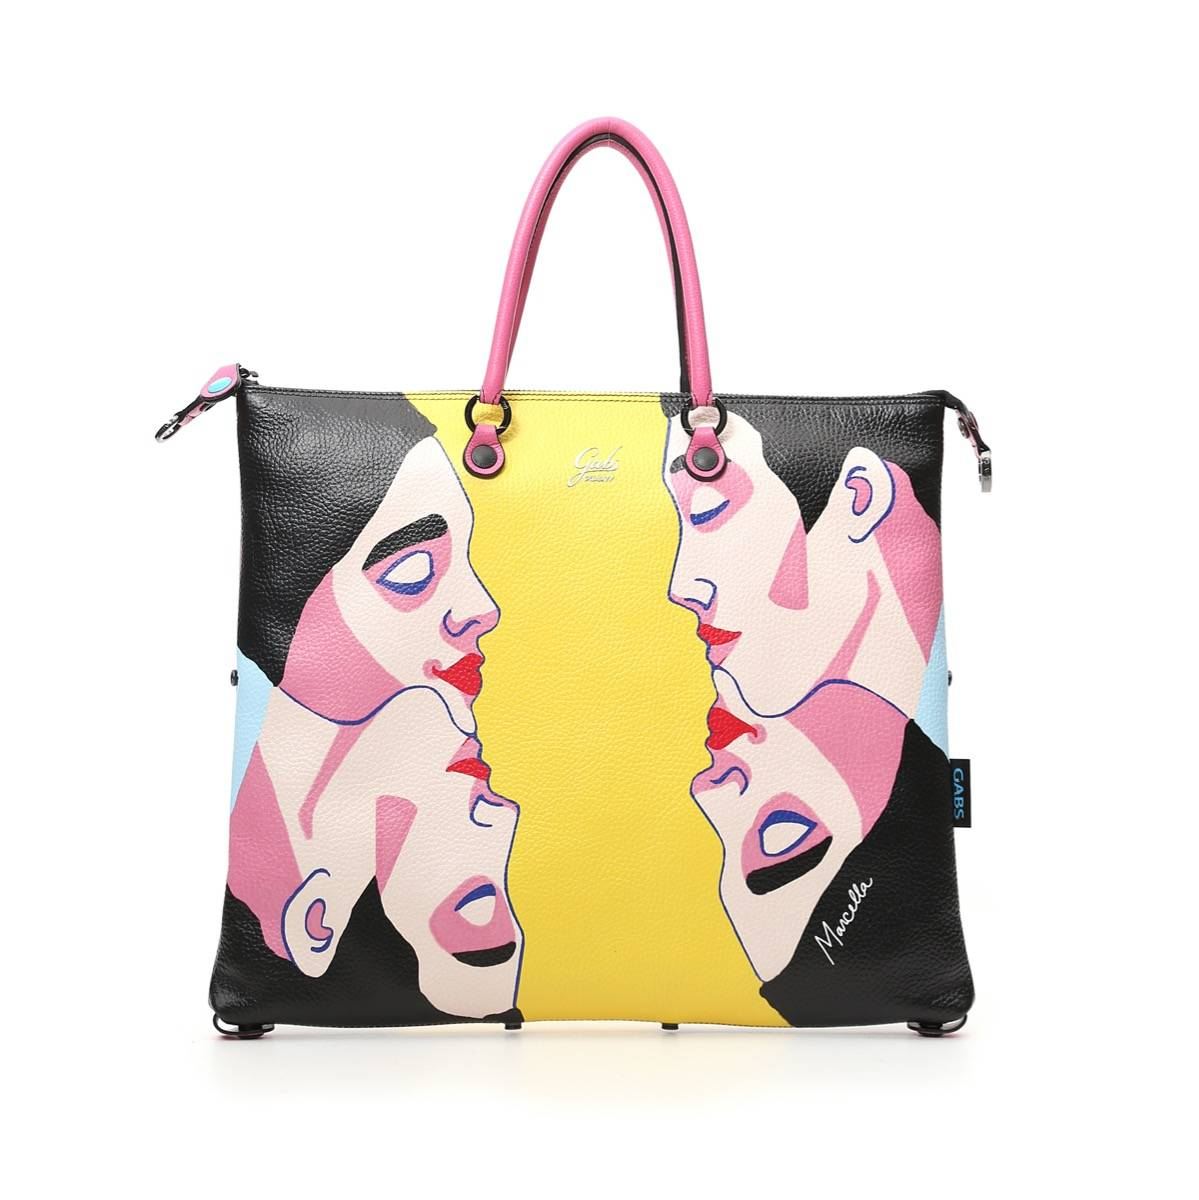 Gabs Borsa Donna a Mano G3 Super Trasformabile in Pelle stampa Duality Large